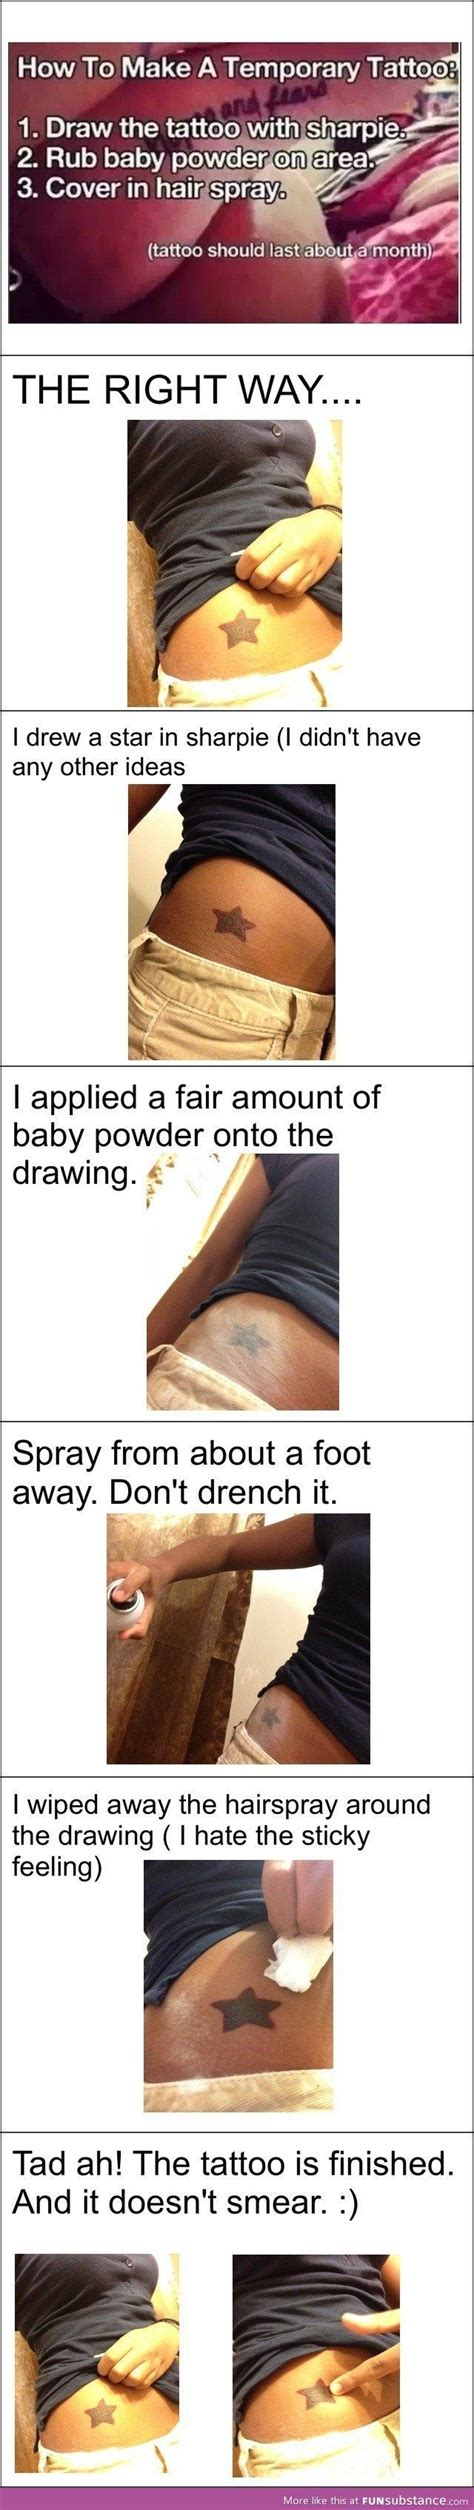 how to make sharpie tattoos last for who dont want a permanent you can make